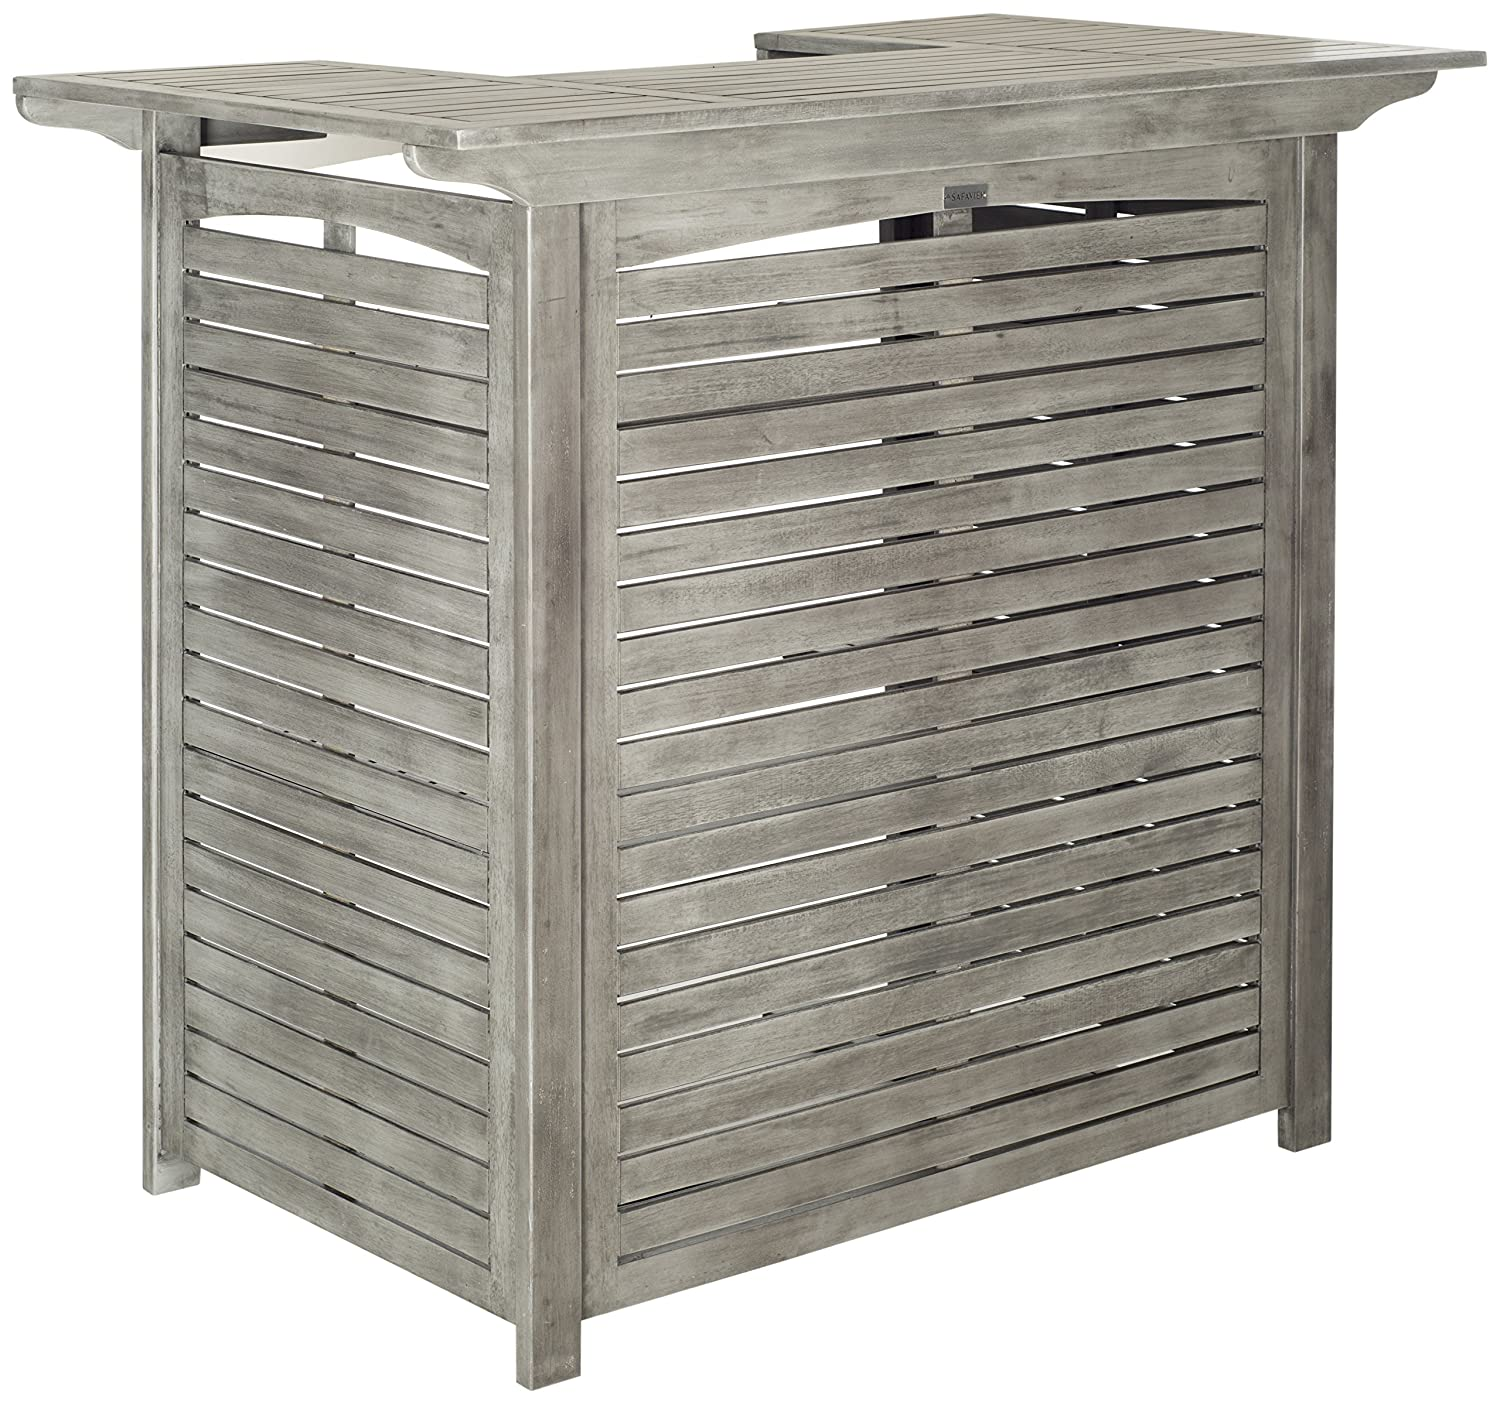 Amazon.com : Safavieh Outdoor Living Collection Monterey Washed Bar Table,  Grey : Garden & Outdoor - Amazon.com : Safavieh Outdoor Living Collection Monterey Washed Bar